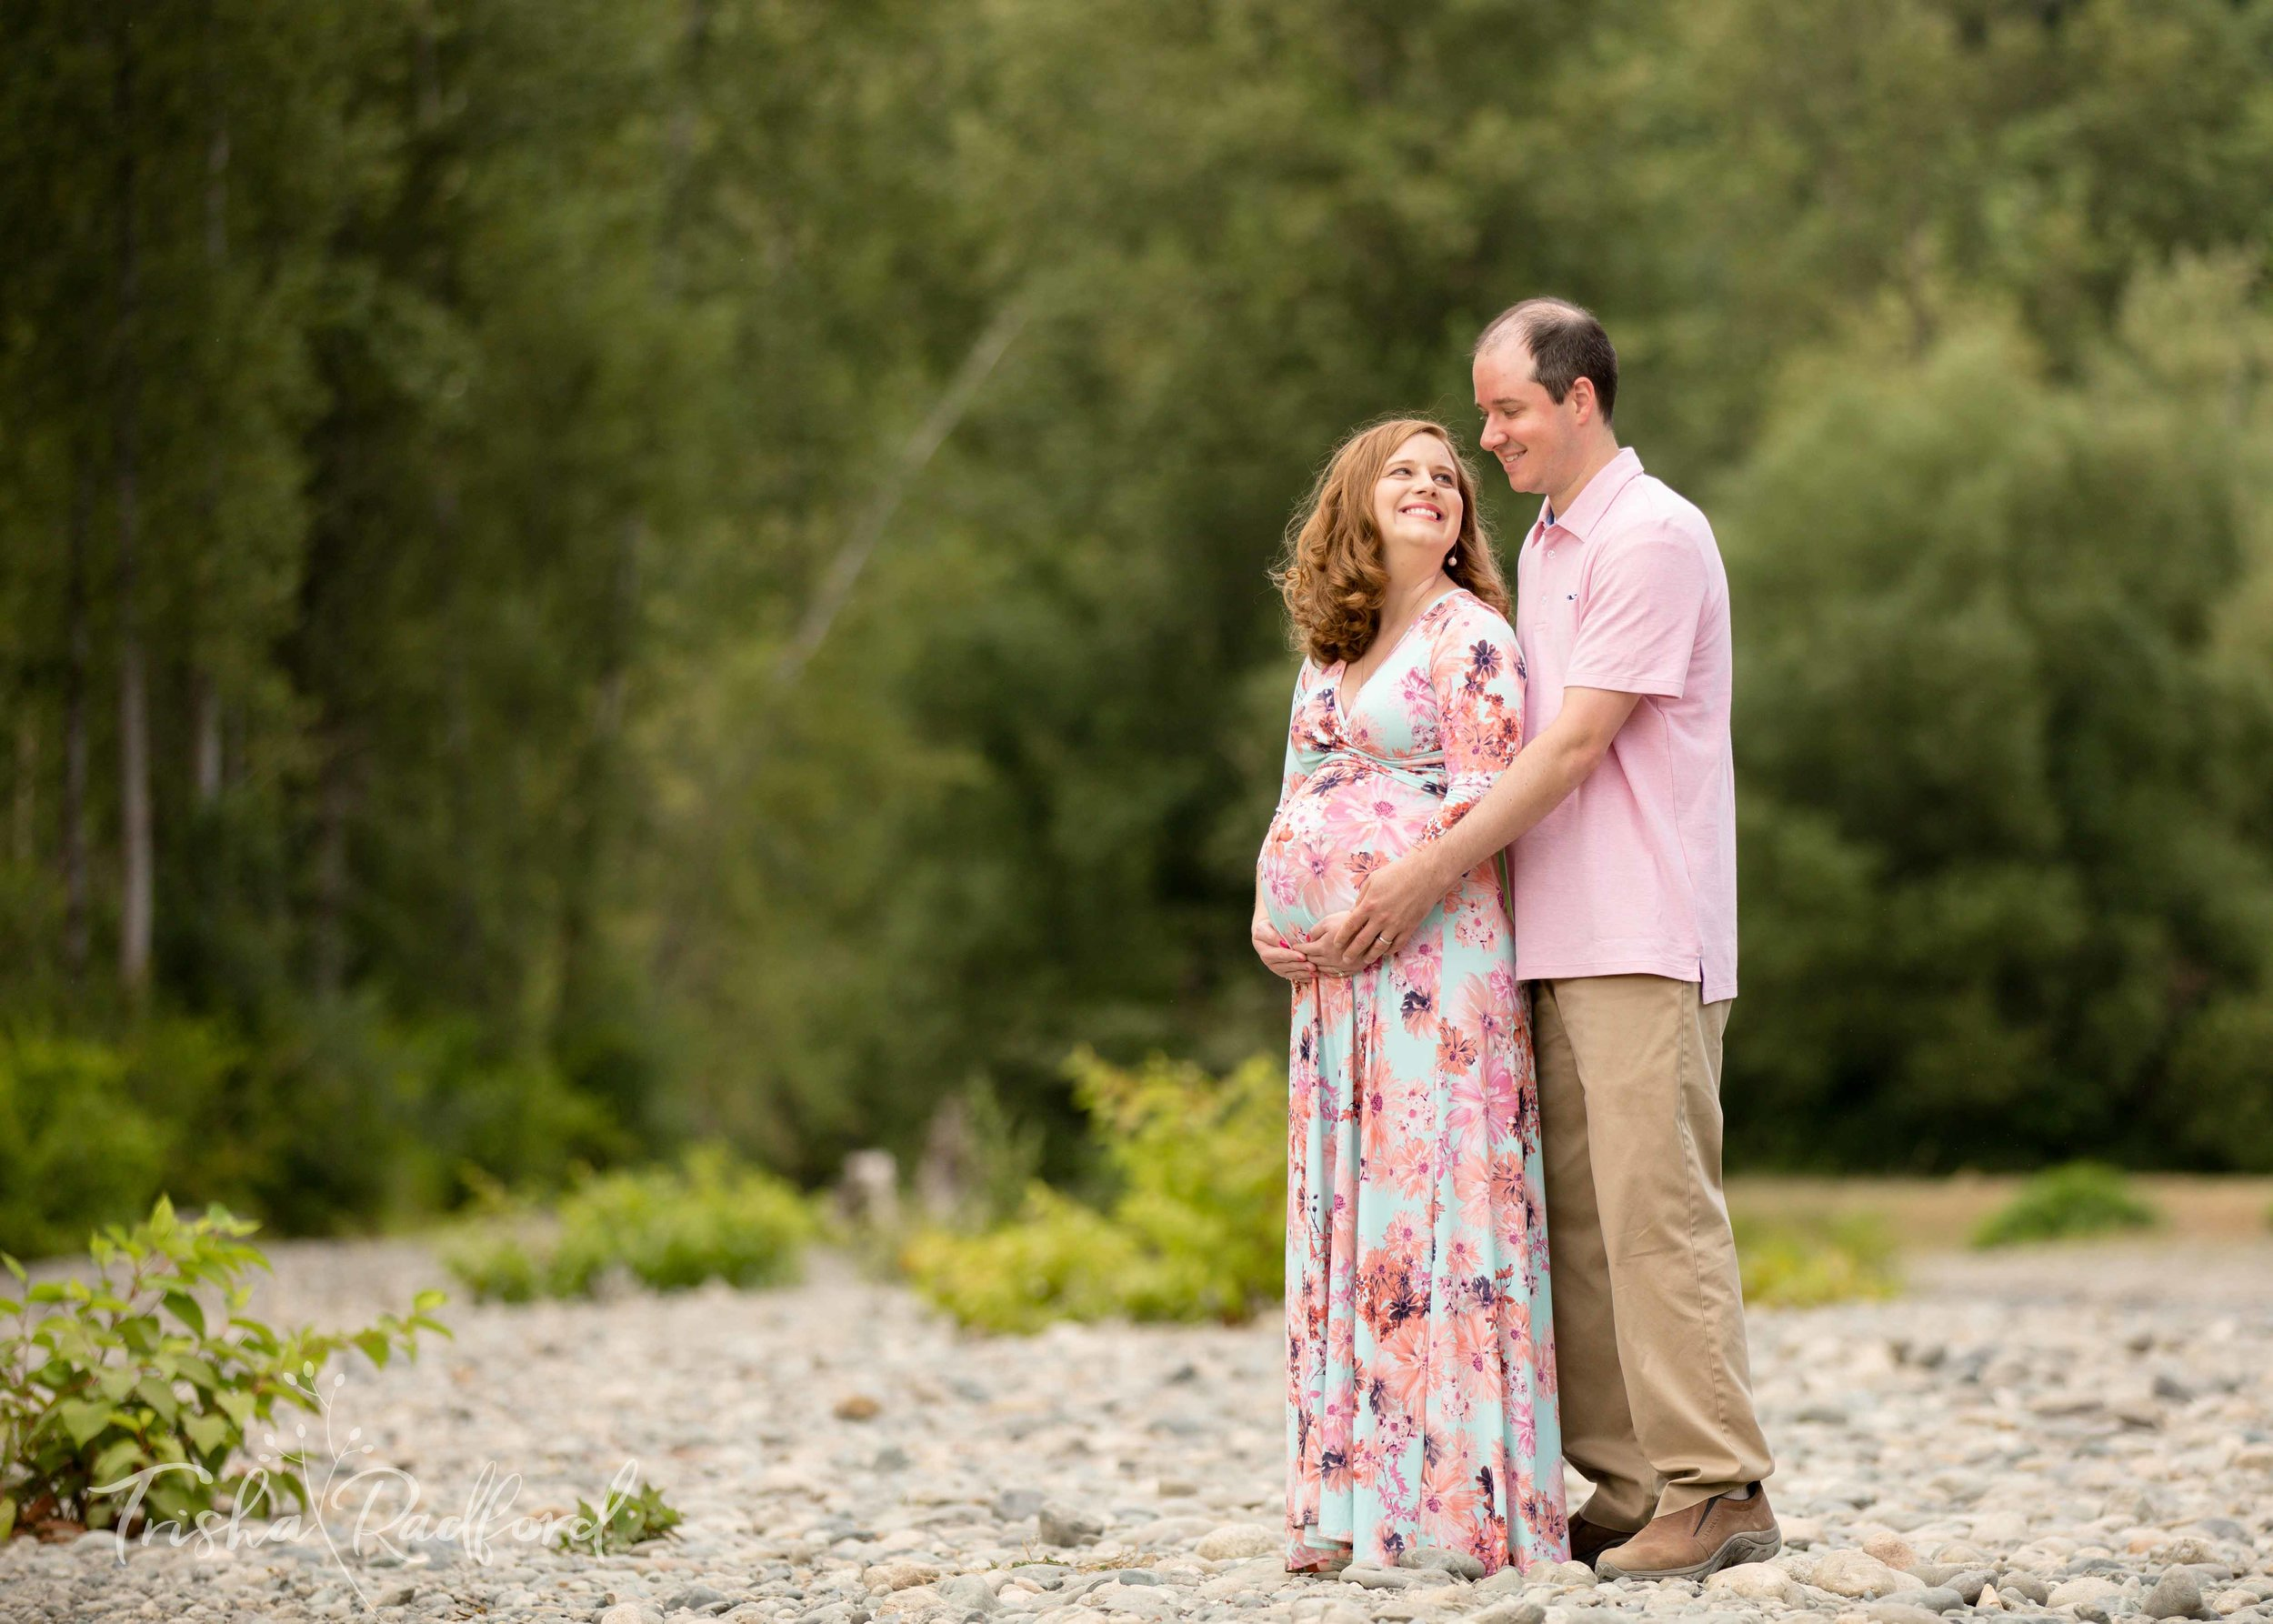 Maternity Photographer, Snohomish County, Pregnancy Photography, Lake Stevens WA